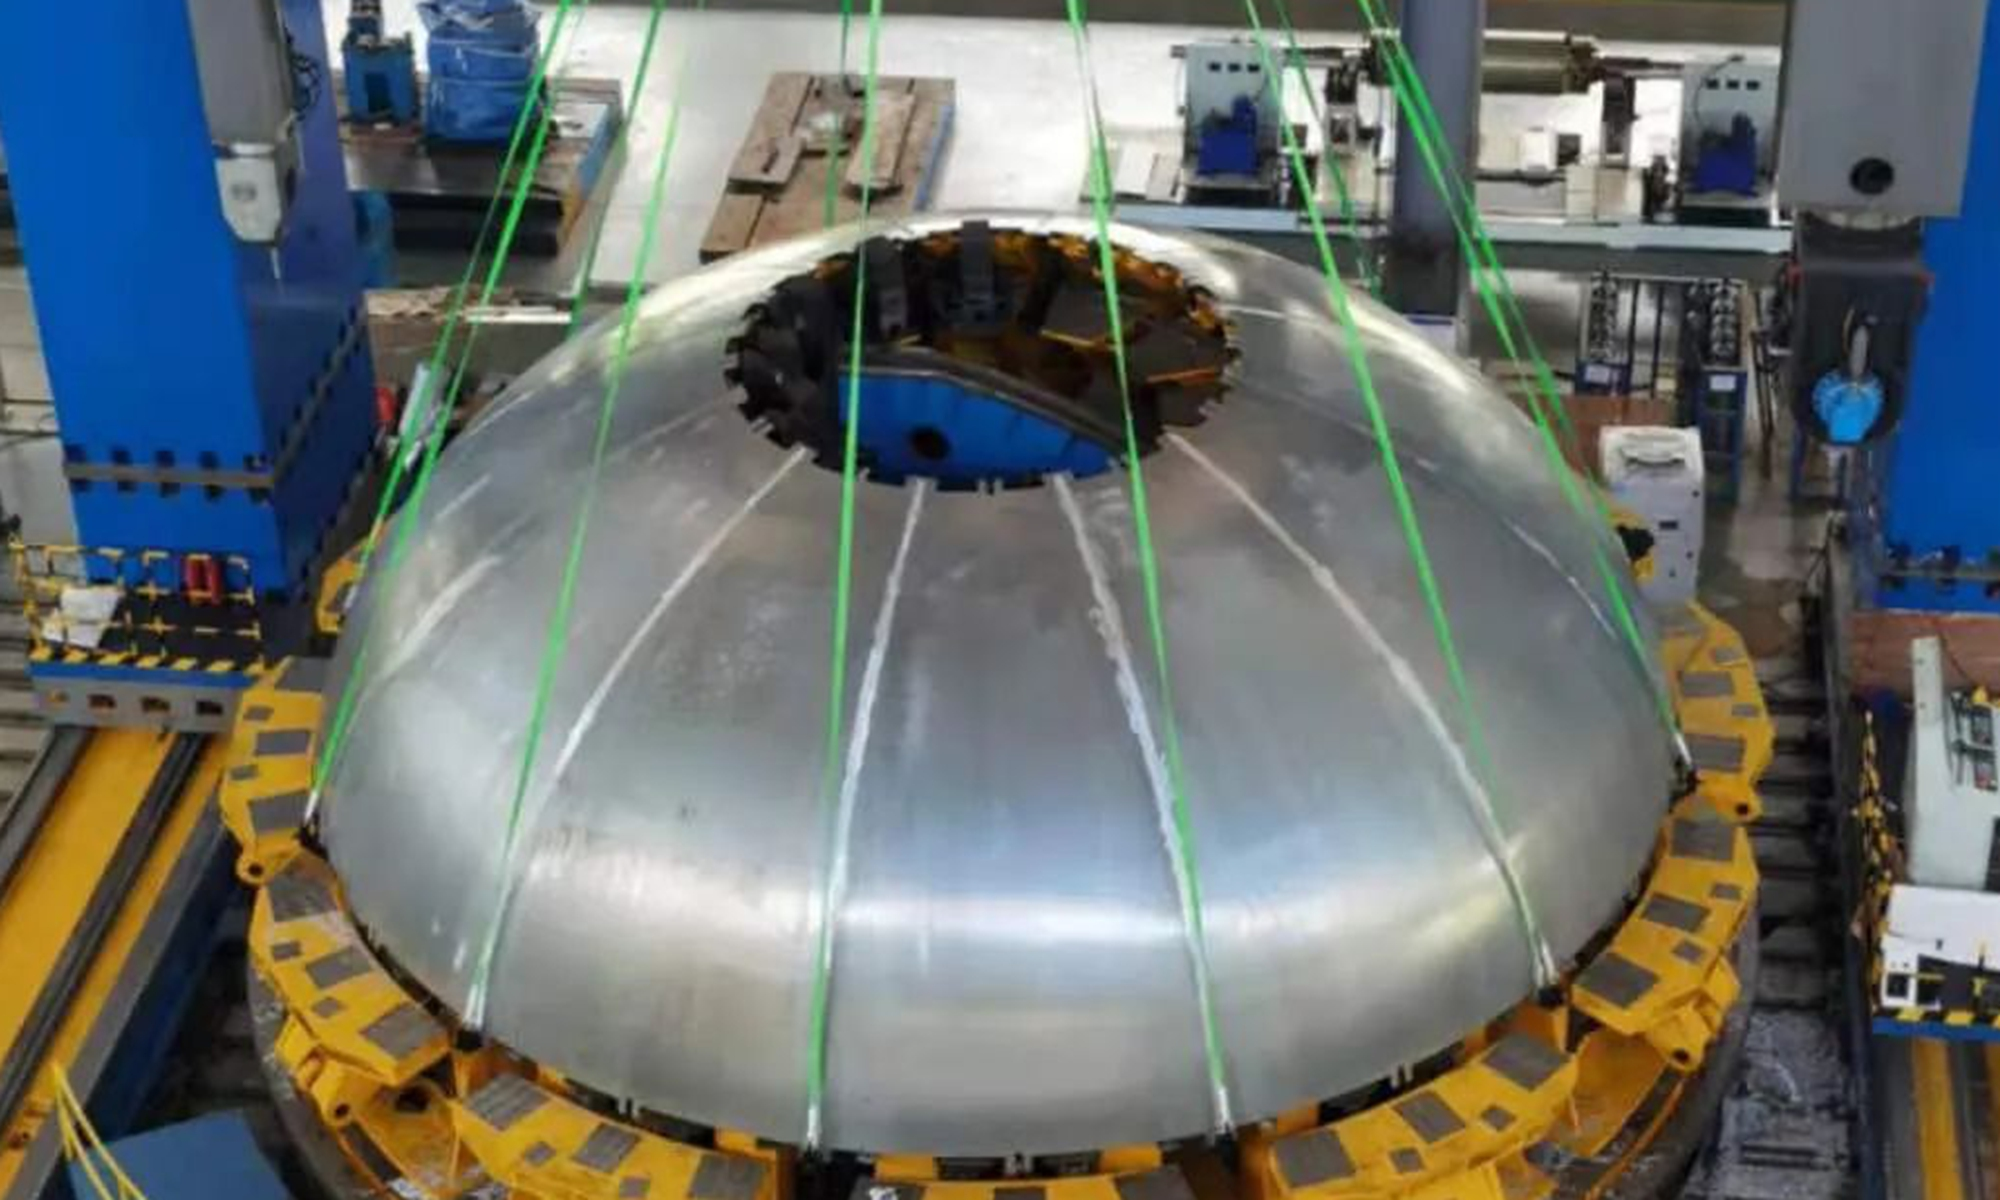 China's first 9.5-meter-diameter rocket tank bottom is rolled out in Wuhan, Central China's Hubei Province, by research teams from the China Aerospace Science and Technology Corporation (CASC). Photo: China Space News